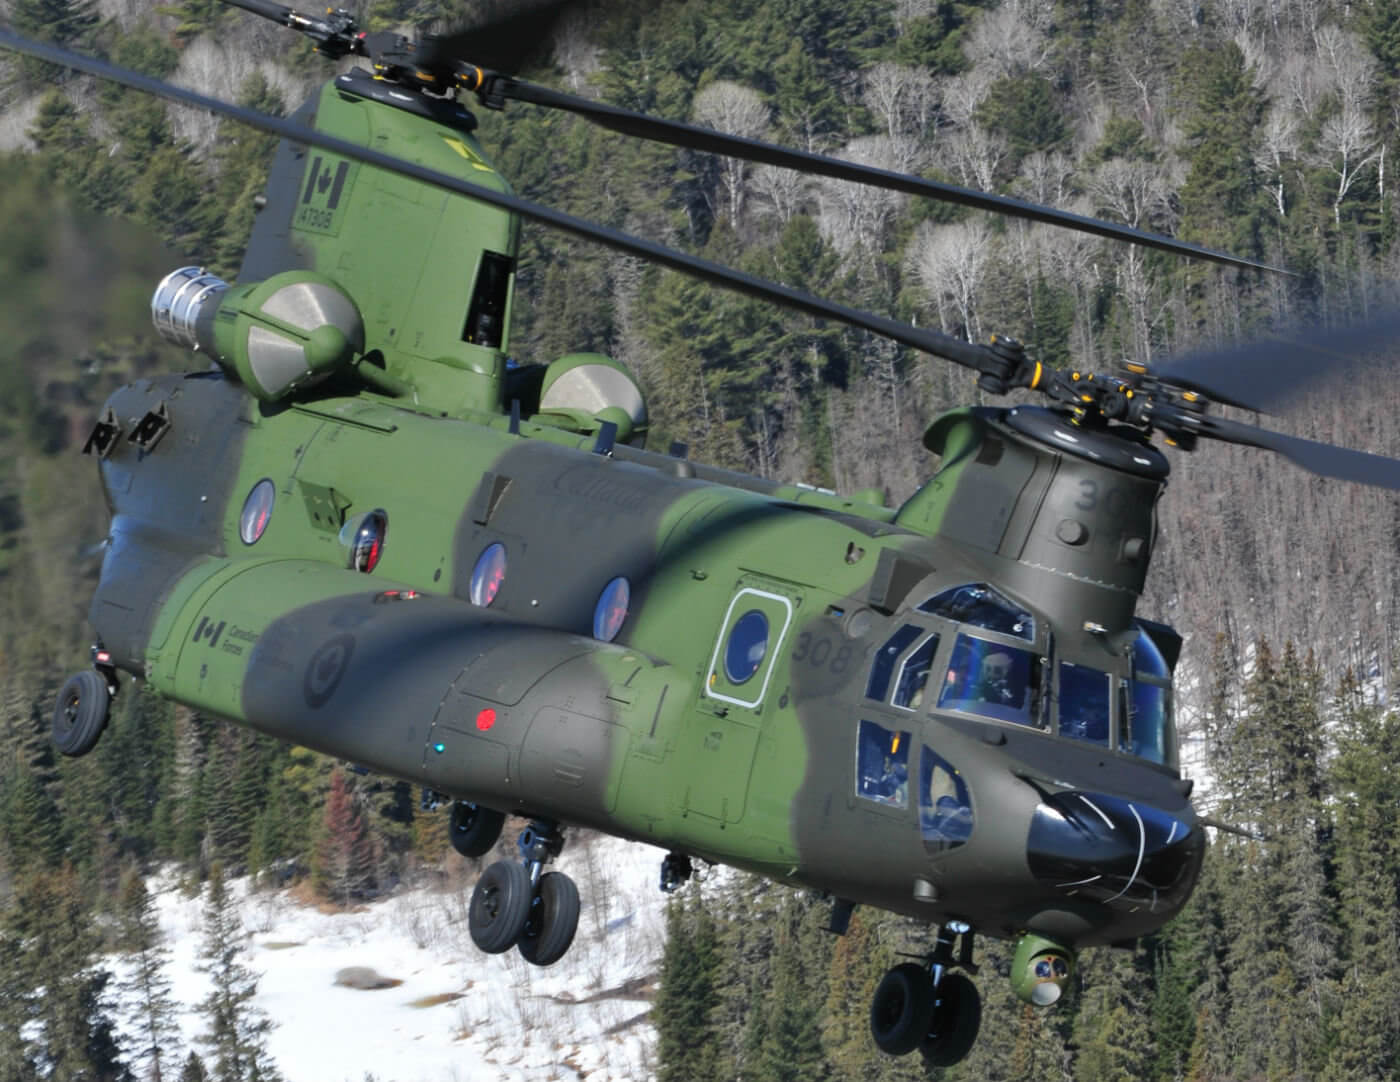 """At present, the RCAF does not have an approved project to upgrade the CH-147F Chinook fleet, but it is seeking to improve the weapons system through the normal project approval process to """"maintain relevance and compliance."""" Mike Reyno Photo"""